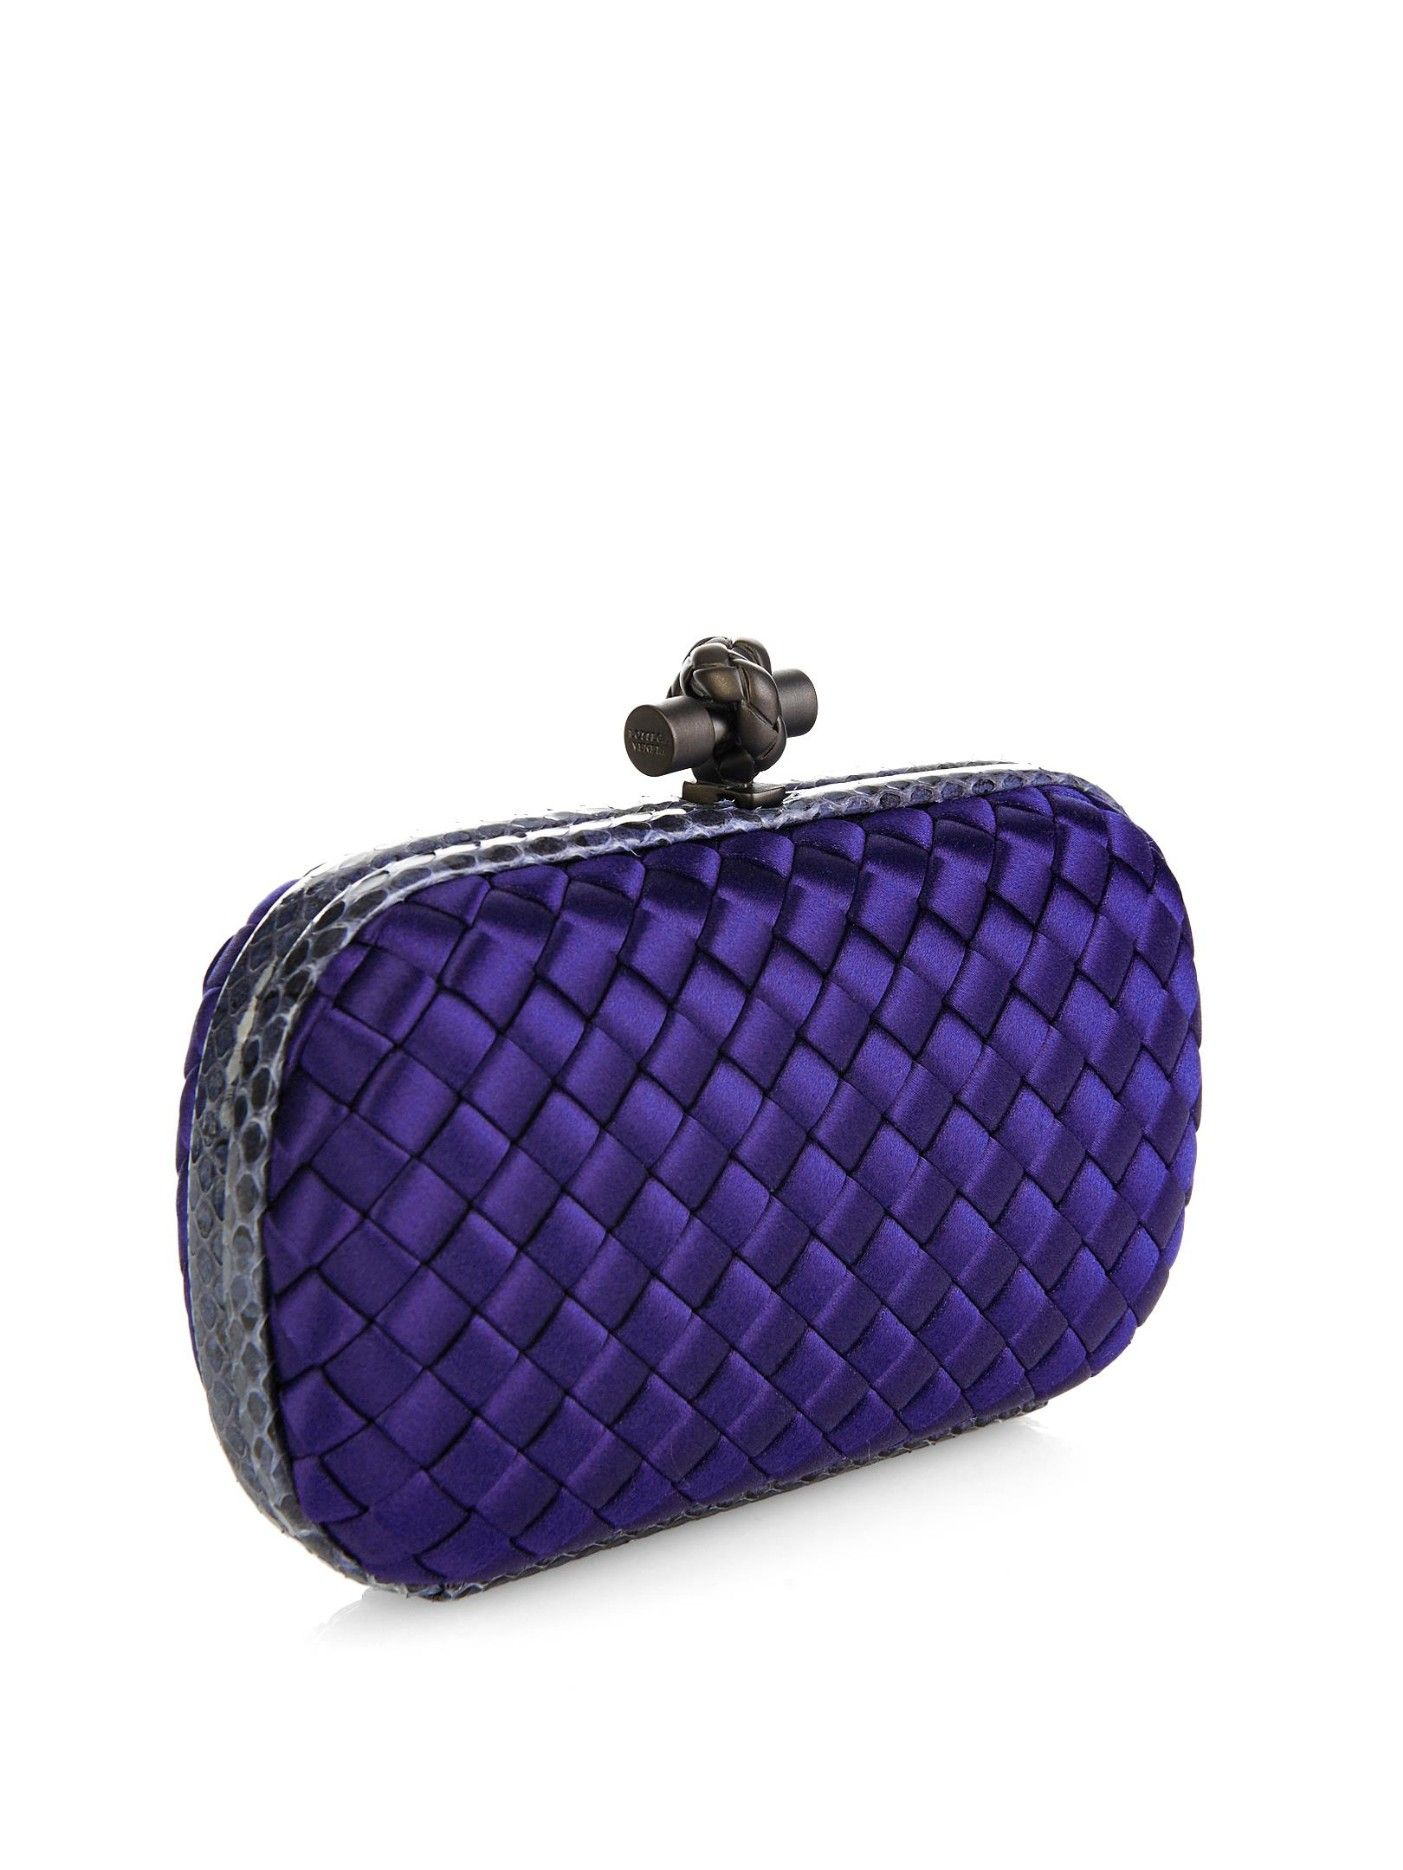 6508f7b0e3 Knot satin and water-snake clutch